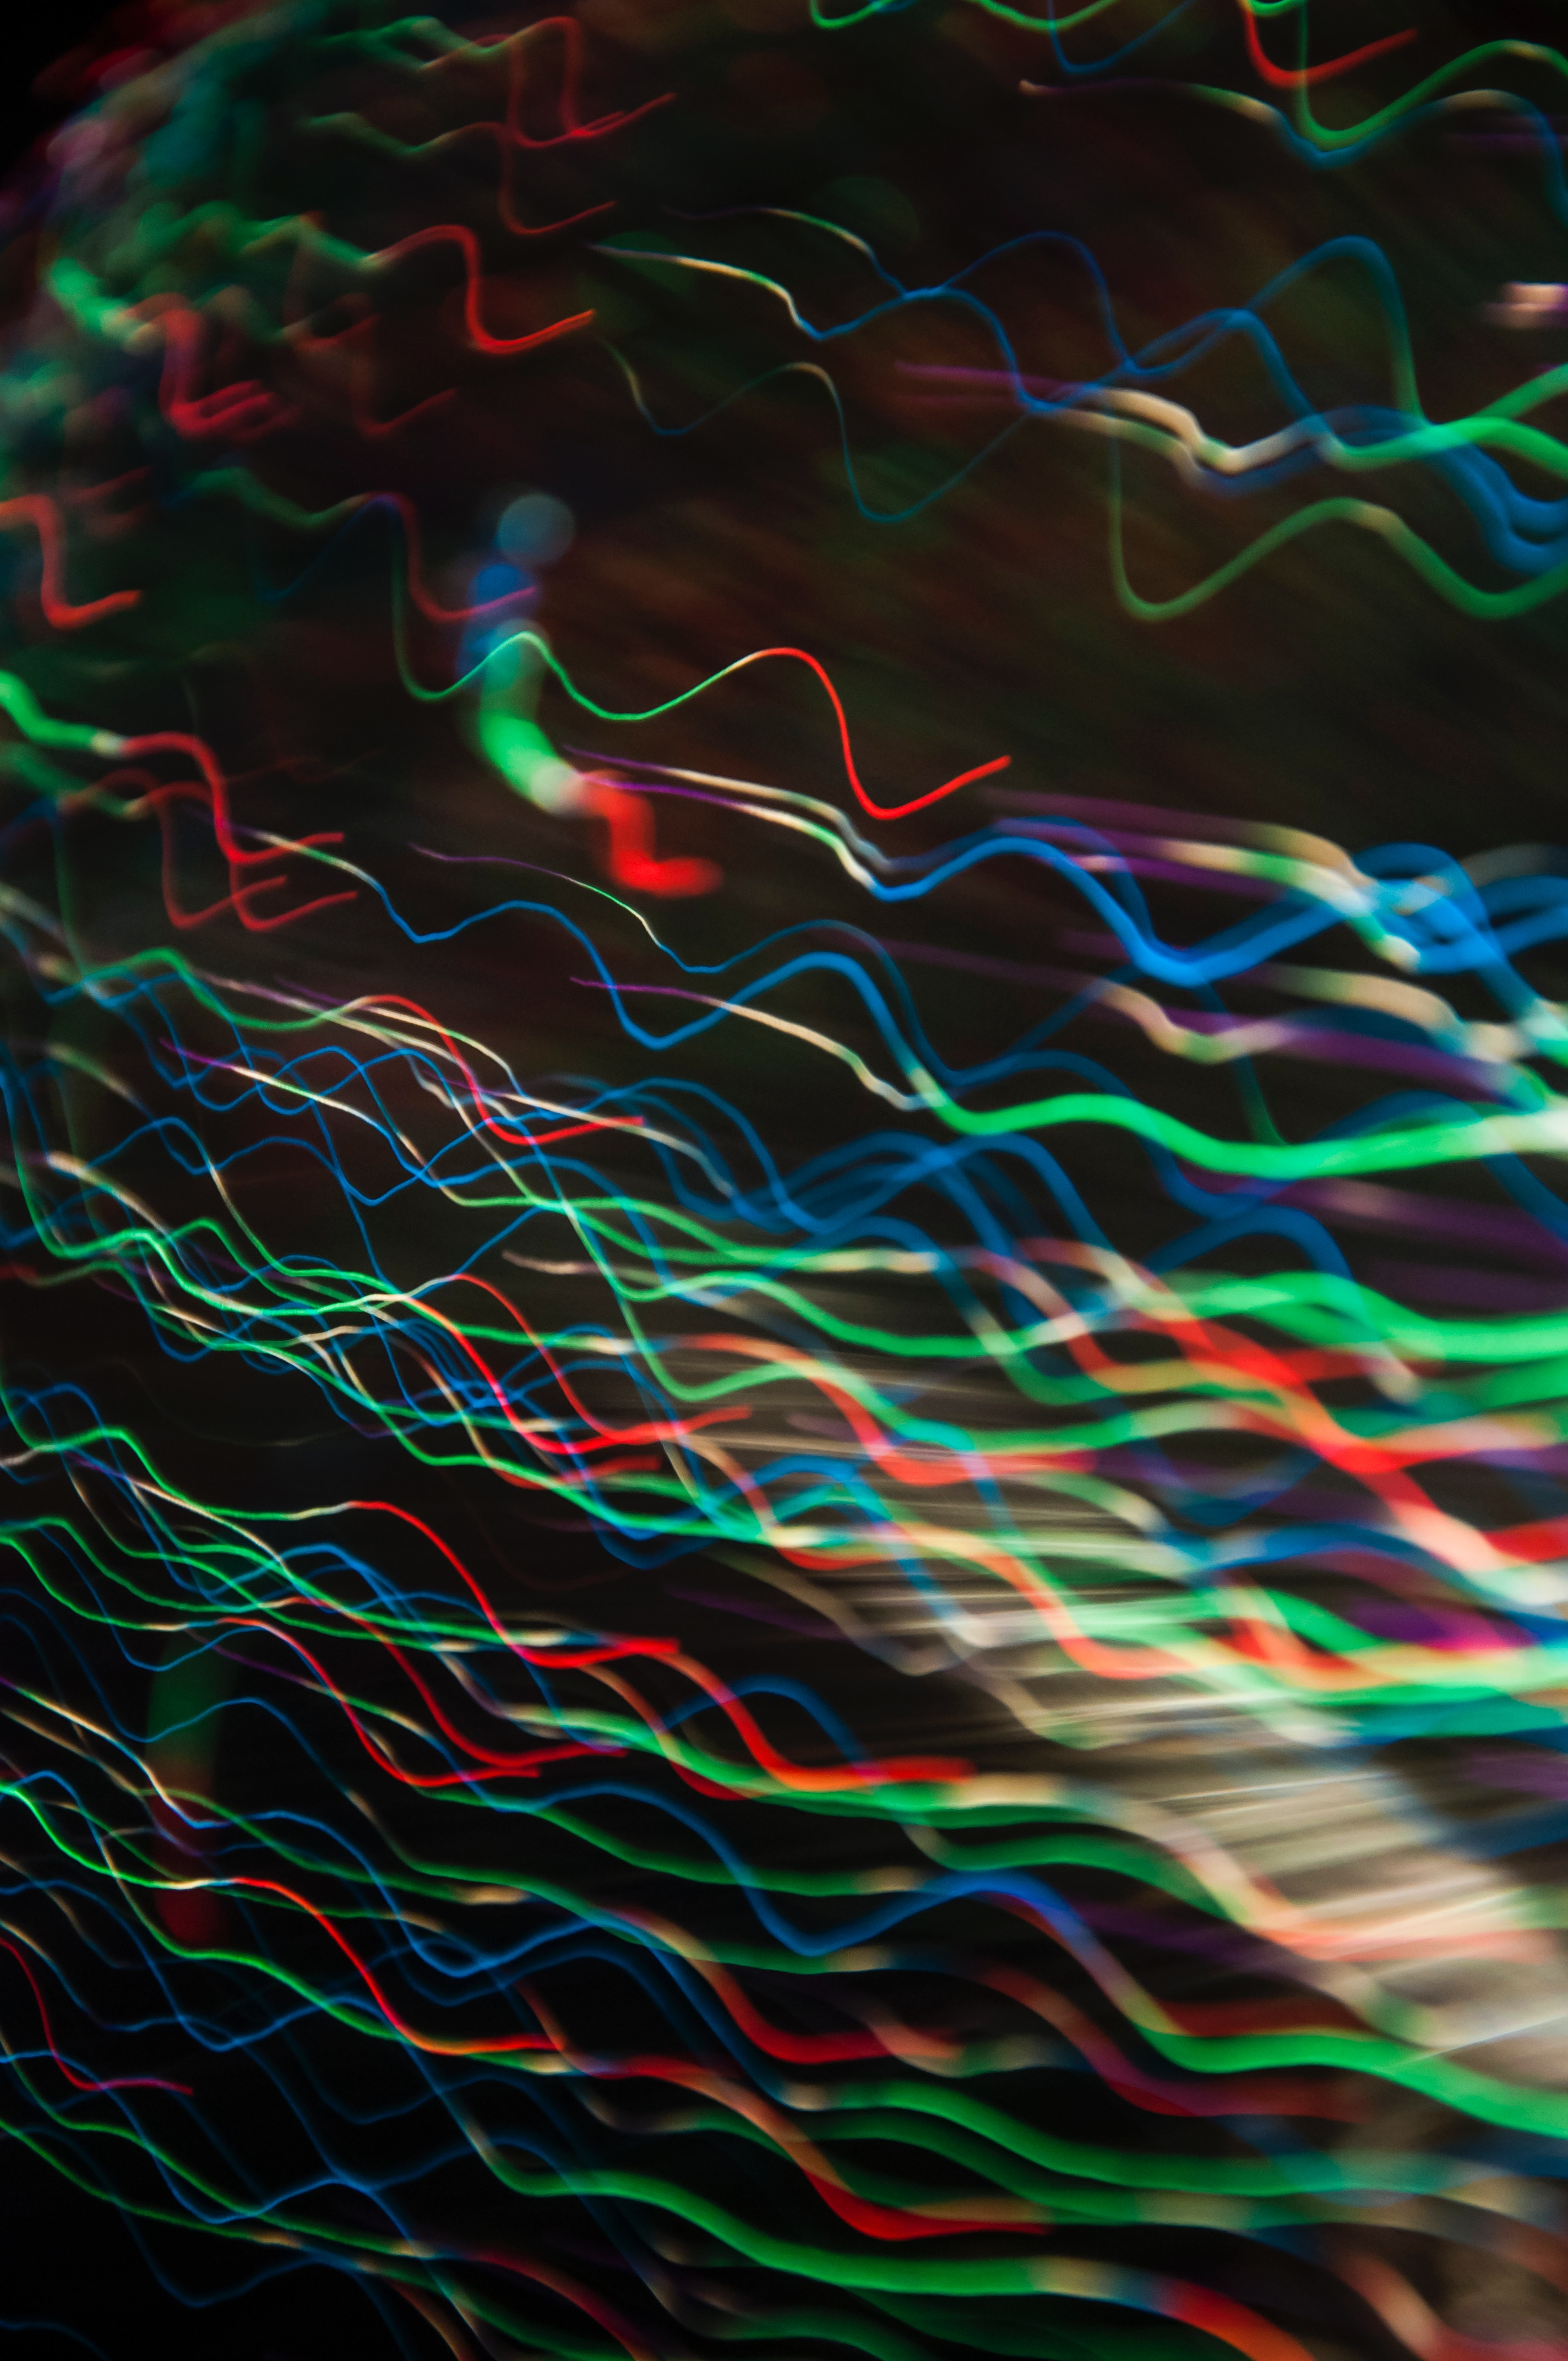 117324 download wallpaper Abstract, Lines, Wavy, Multicolored, Motley, Glow screensavers and pictures for free